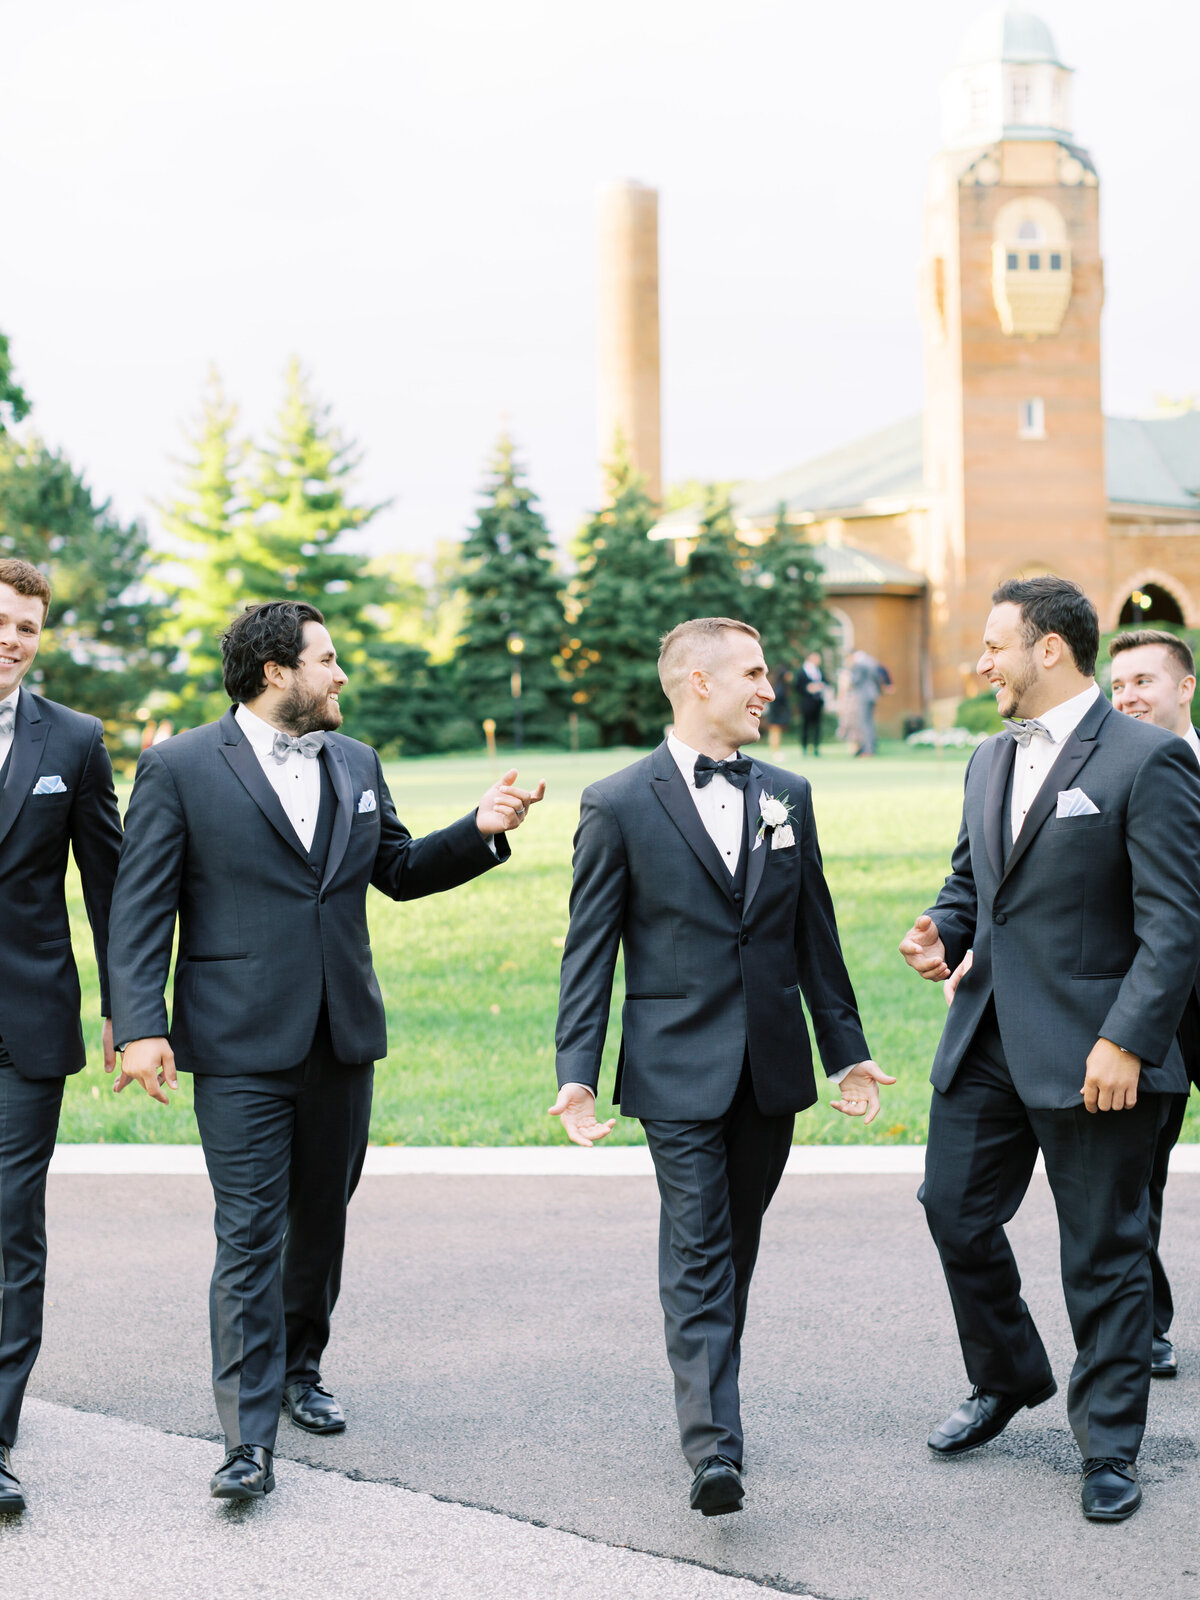 TiffaneyChildsPhotography-ChicagoWeddingPhotographer-Caitlin+Devin-MedinahCountryClubWedding-BridalParty-80